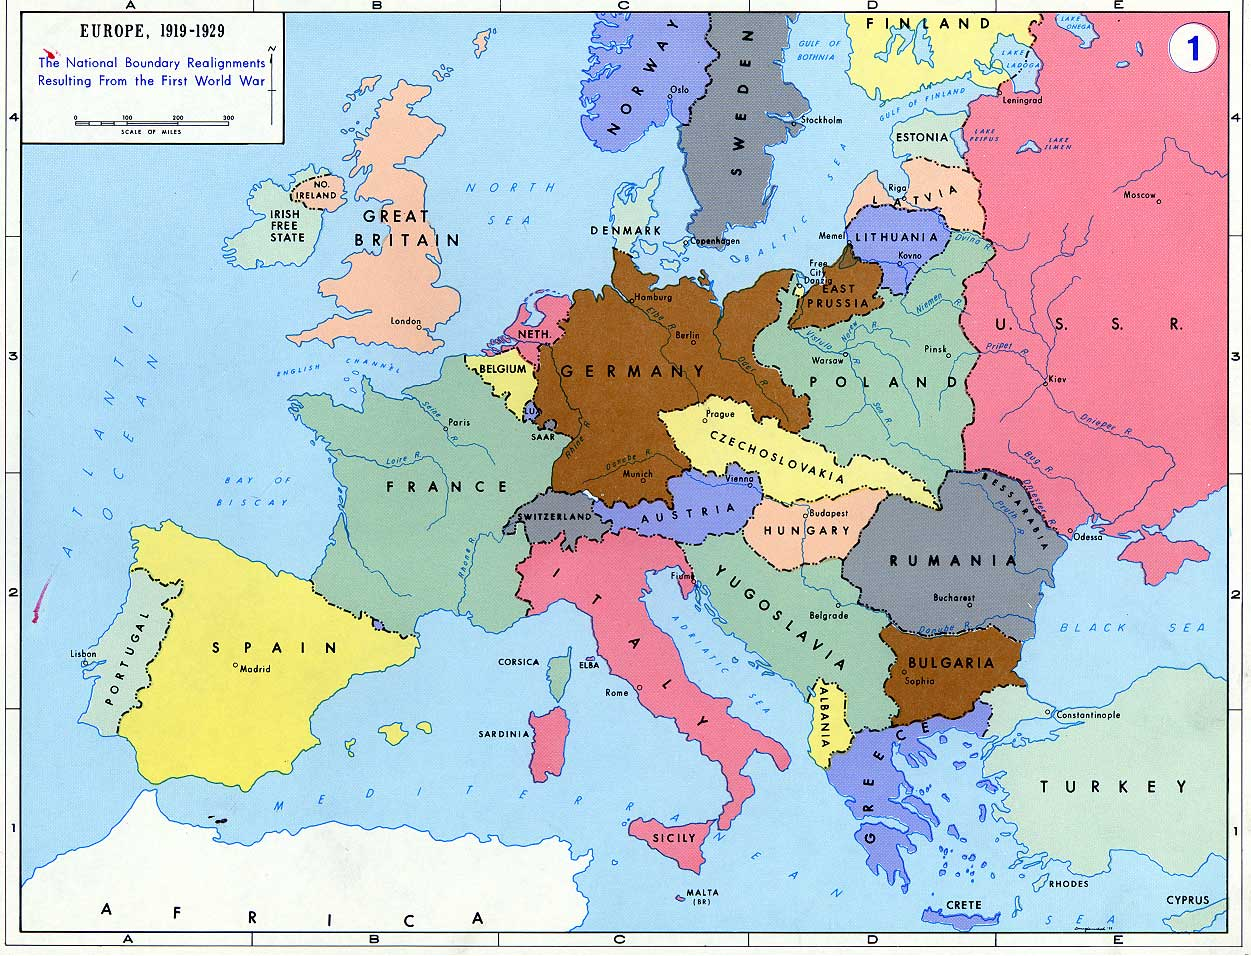 Europe on the world map etamemibawa europe on the world map gumiabroncs